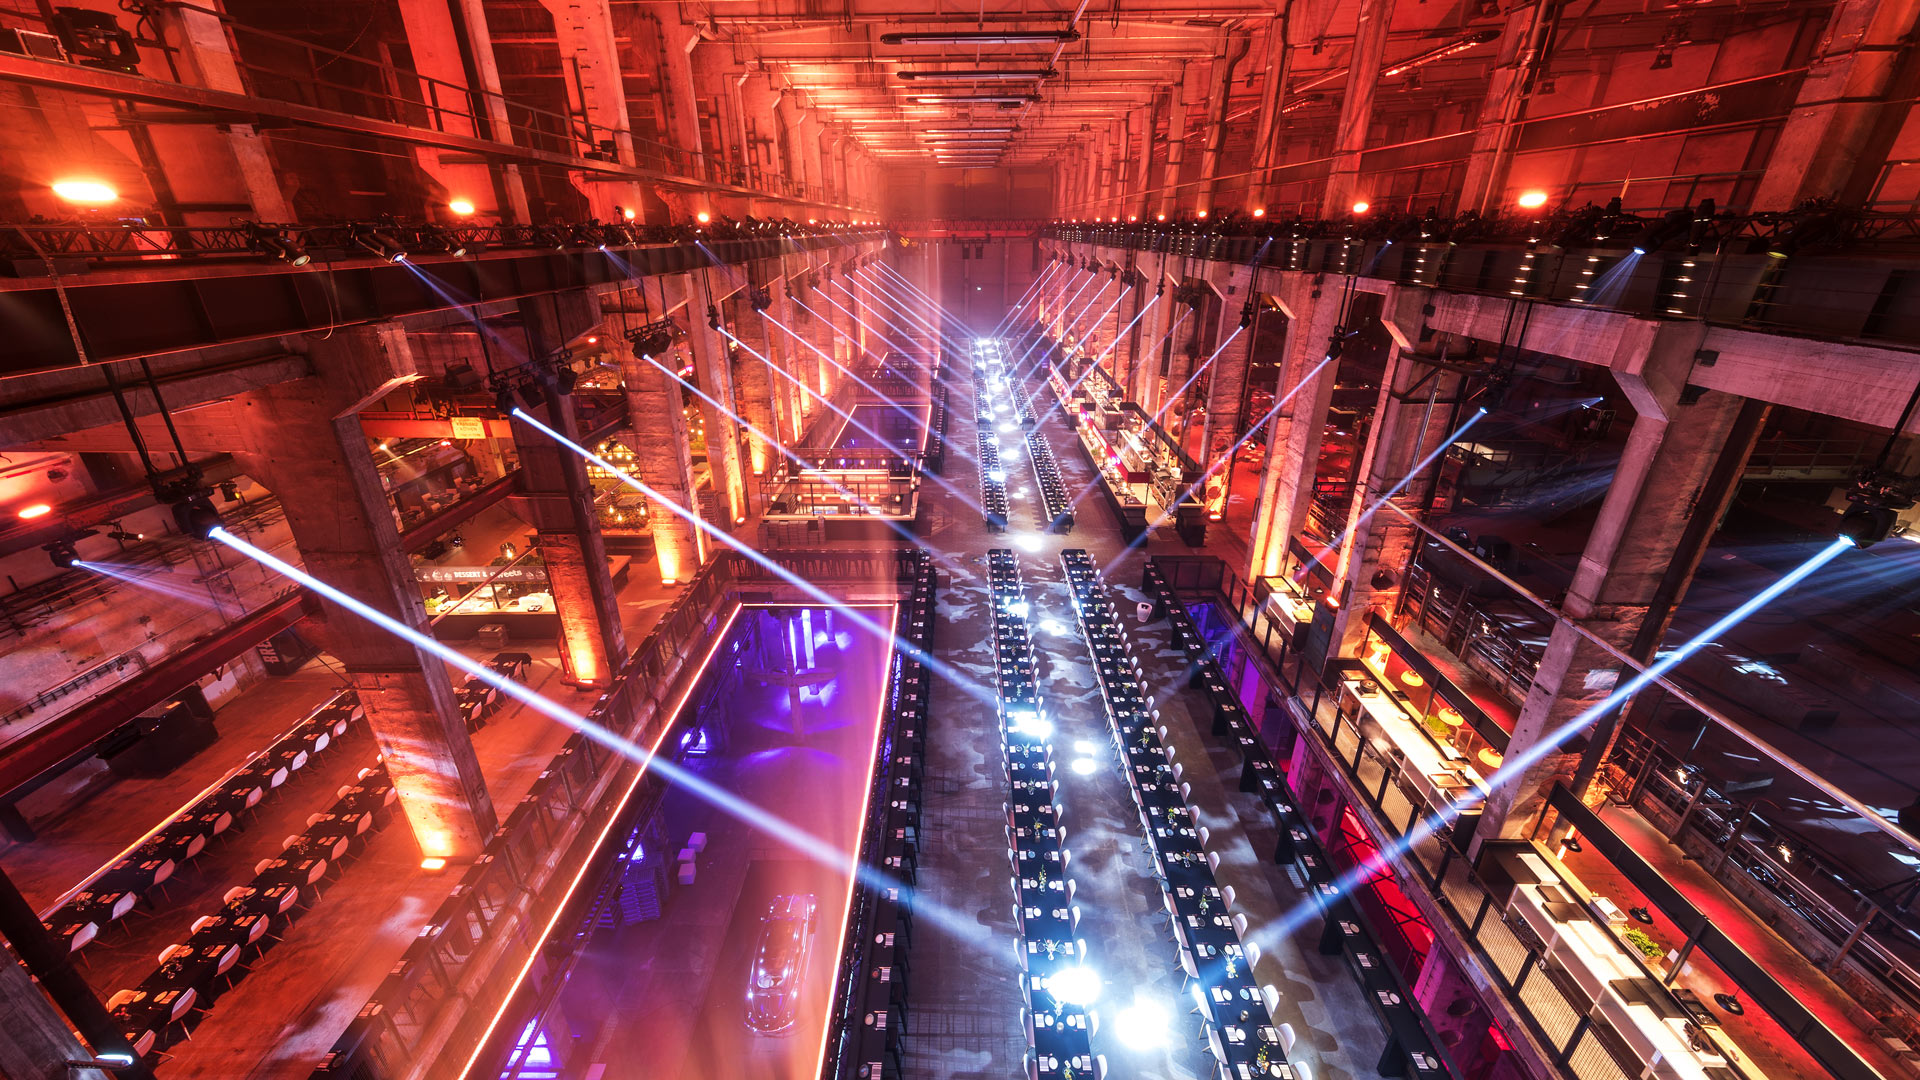 Before the start of the evening event in the Berlin power plant, you can see the set tables from above.